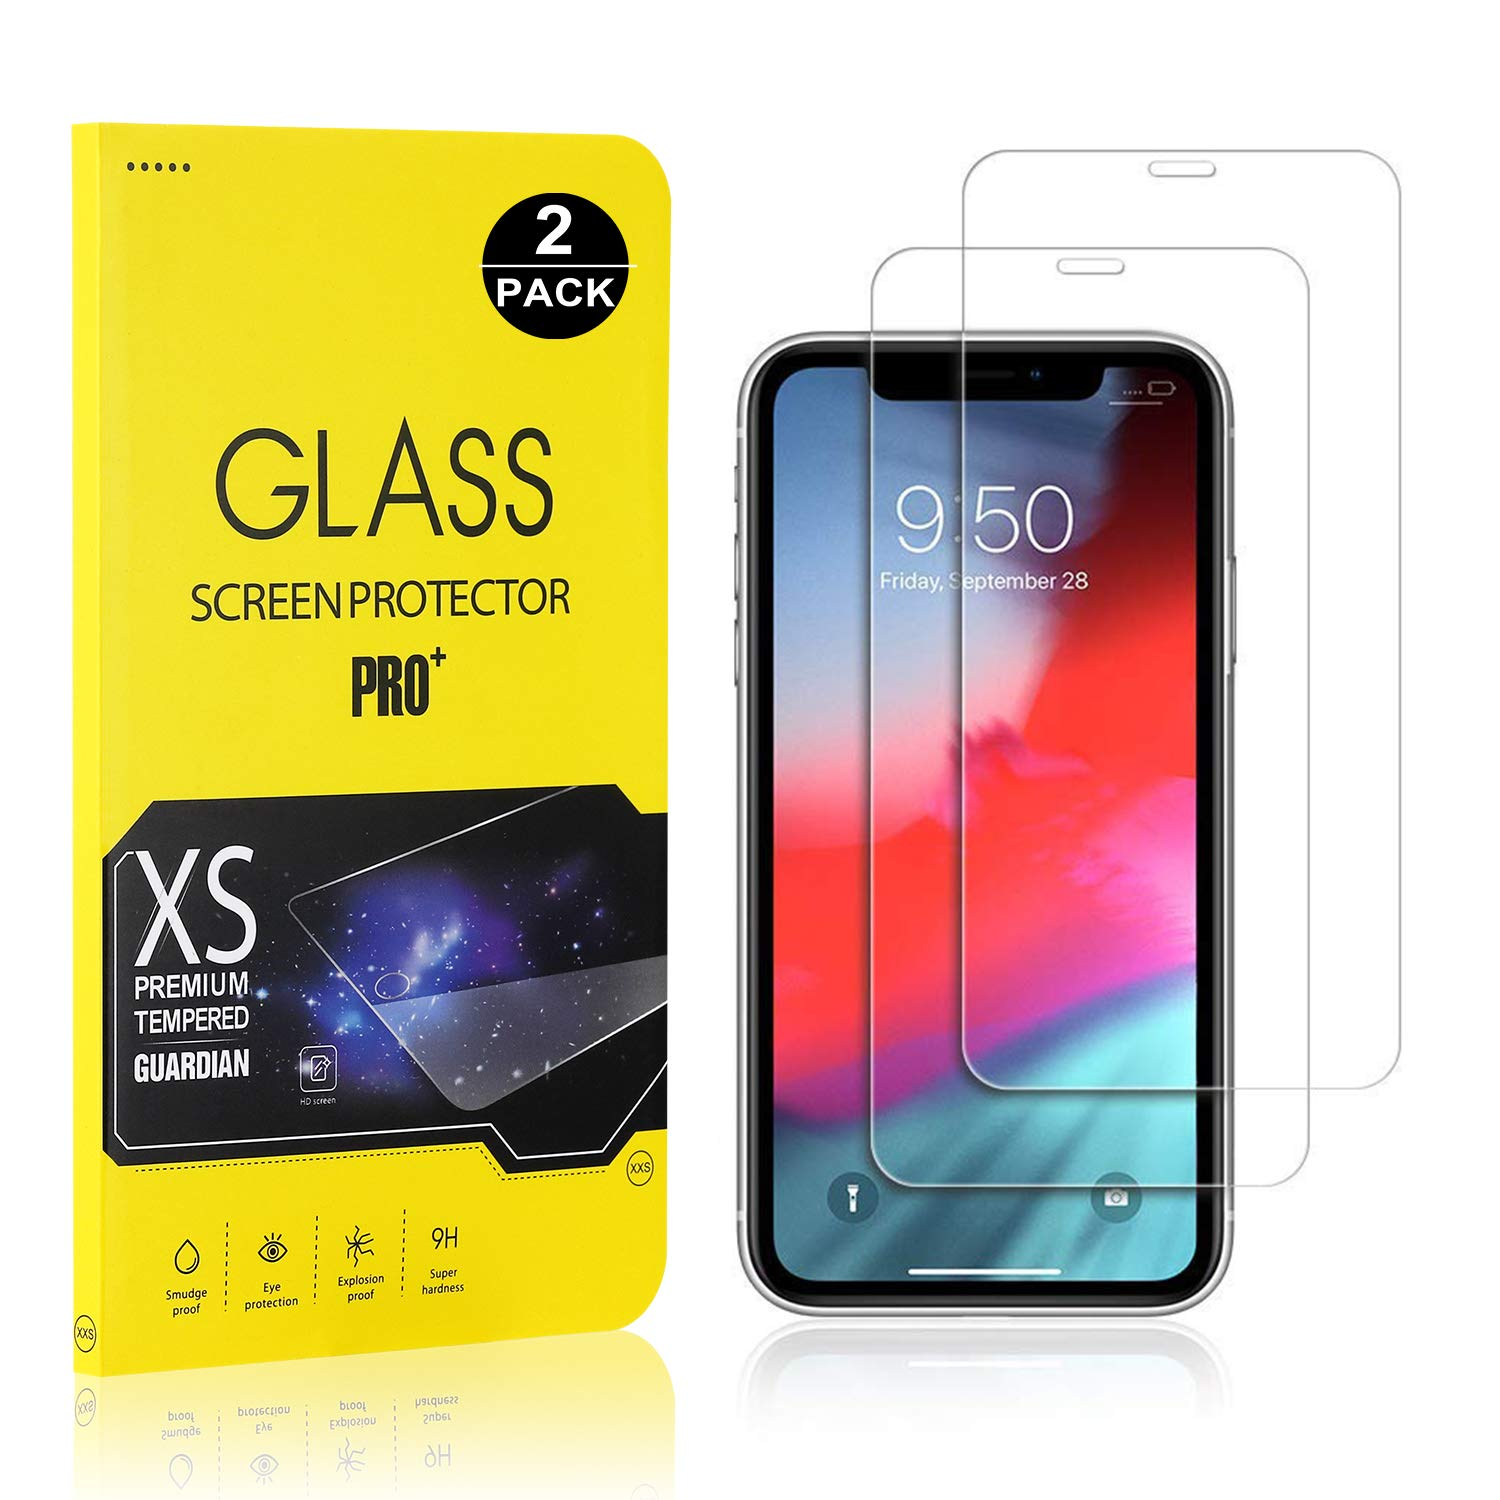 Screen Protector for iPhone XR, Bear Village Tempered Glass Screen Protector, 9H Hardness Screen Protector Film for iPhone XR, 2 Pack